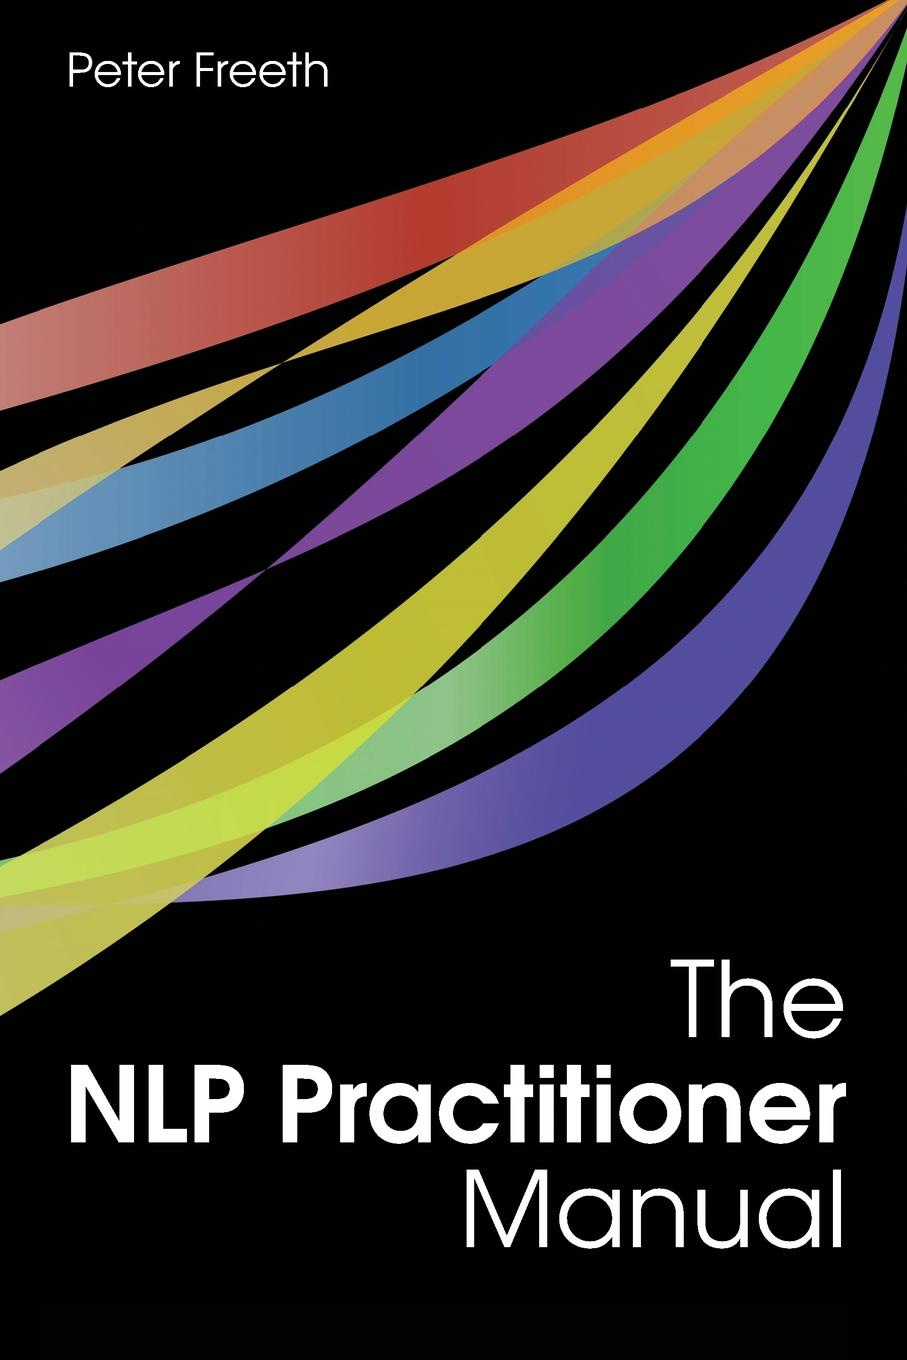 Peter Freeth The NLP Practitioner Manual lindsey agness change your business with nlp powerful tools to improve your organisation s performance and get results